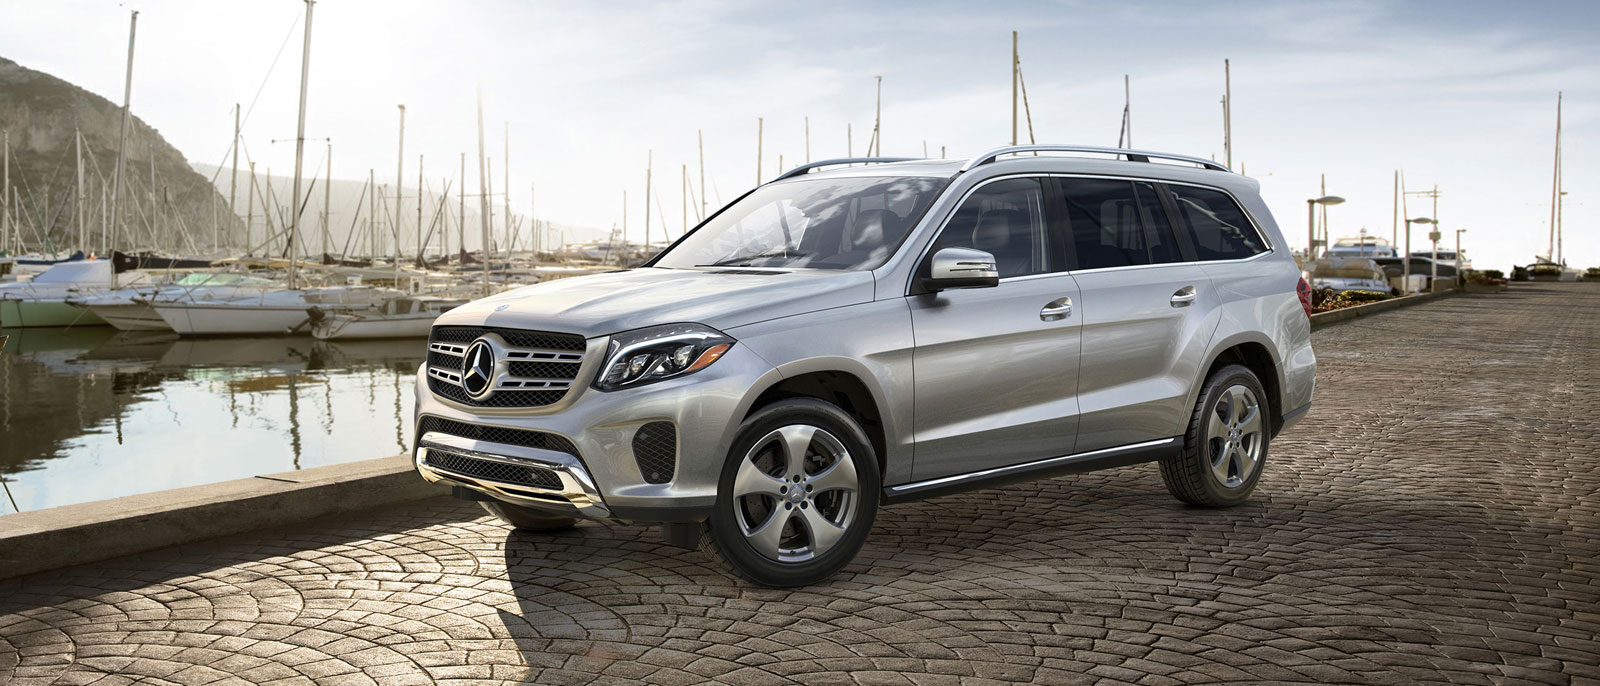 Test drive the 2017 mercedes benz gls450 in alpharetta for 2017 mercedes benz gls450